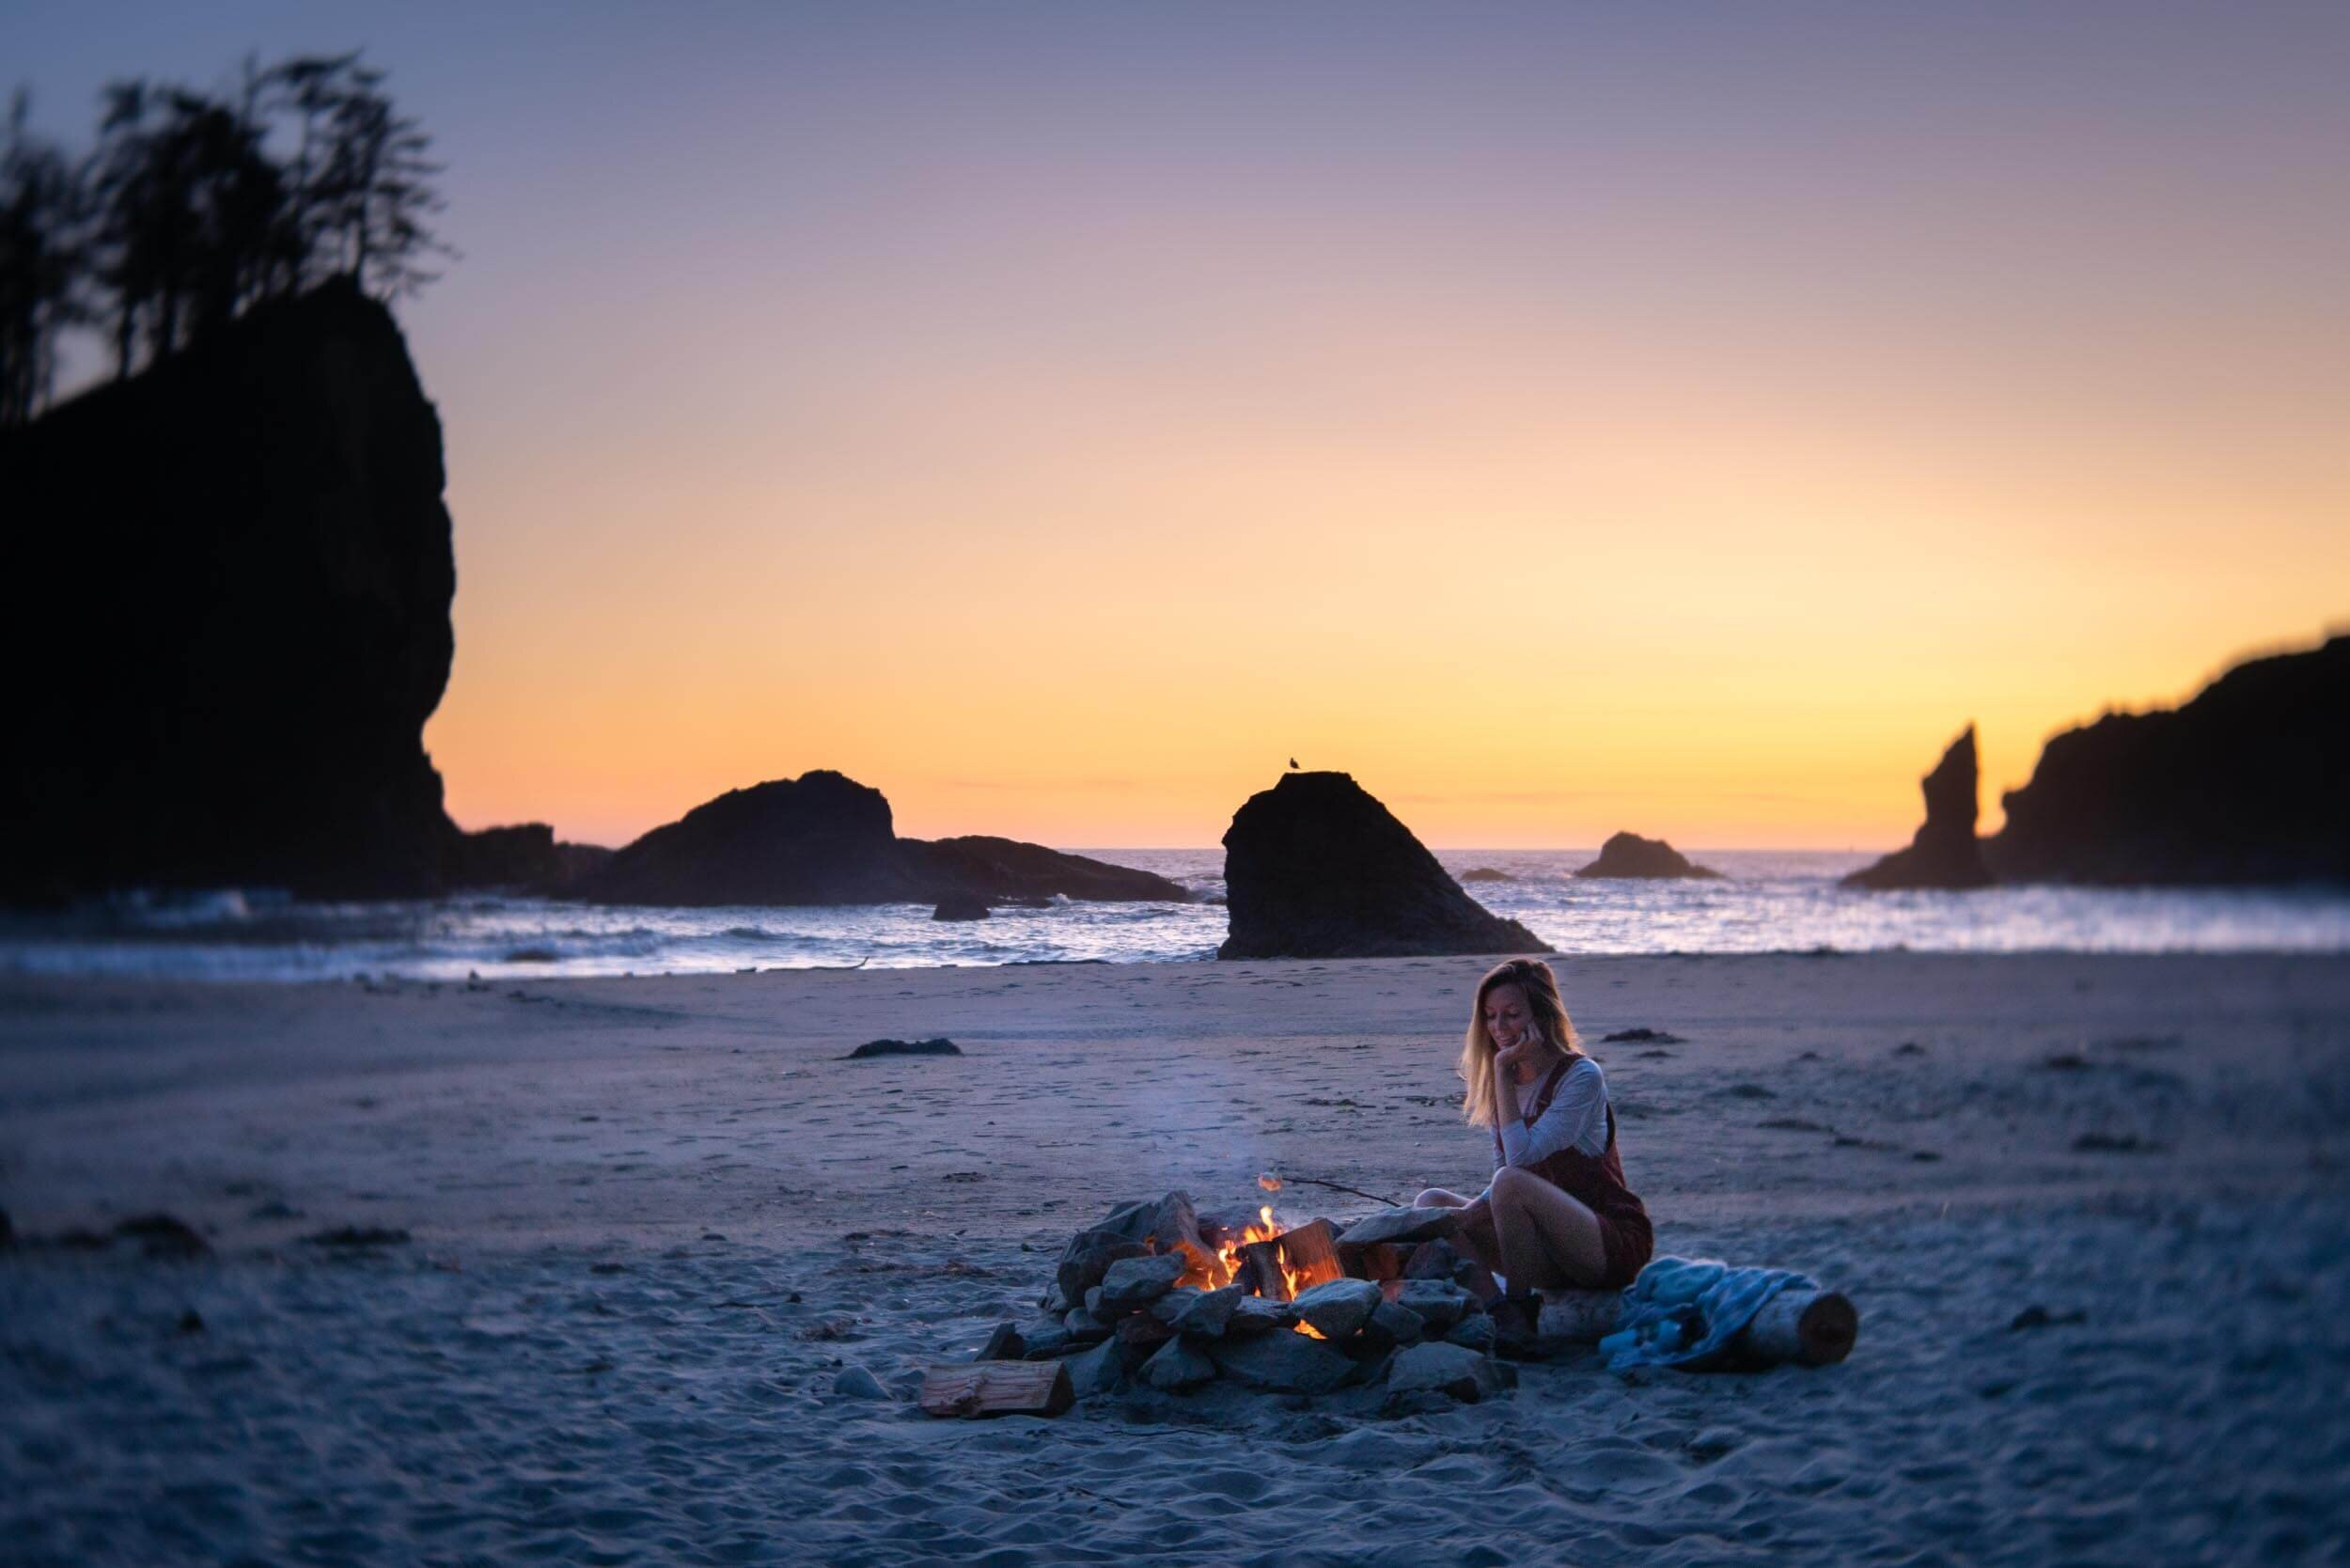 Roasting marshmallows over the camp fire at Second Beach on the Olympic Peninsula in Washington.